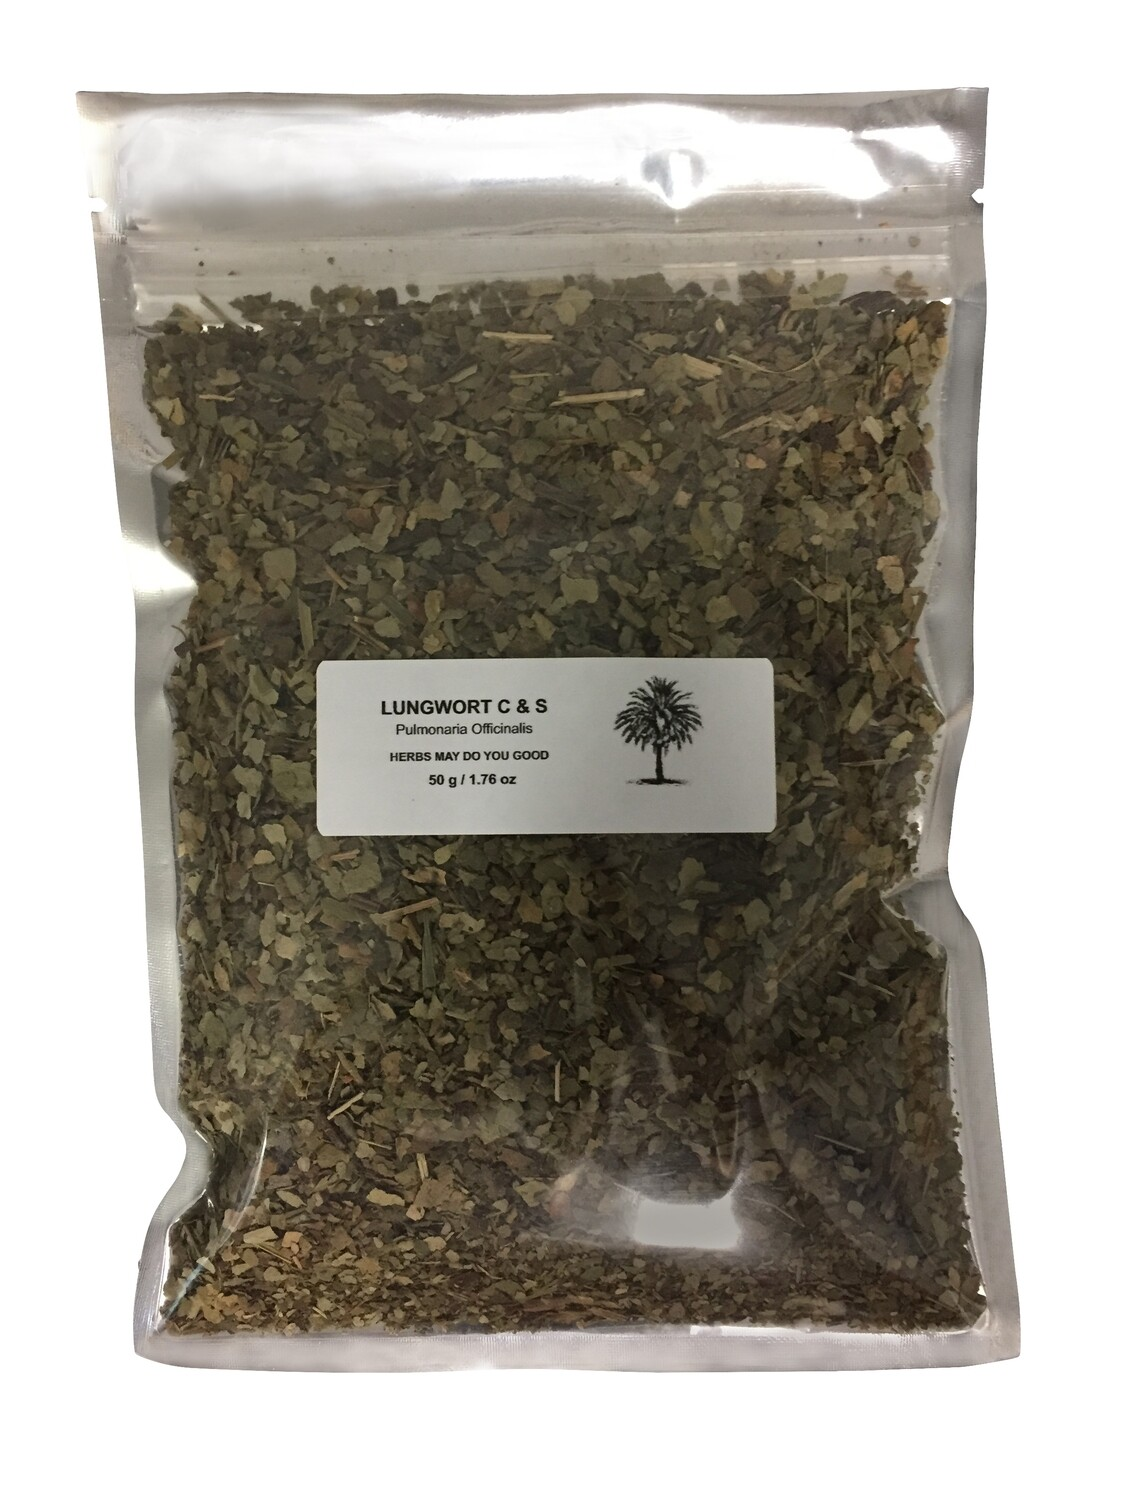 Lungwort Cut & Sifted 50 g / 1.76 oz (Smokers Tea)